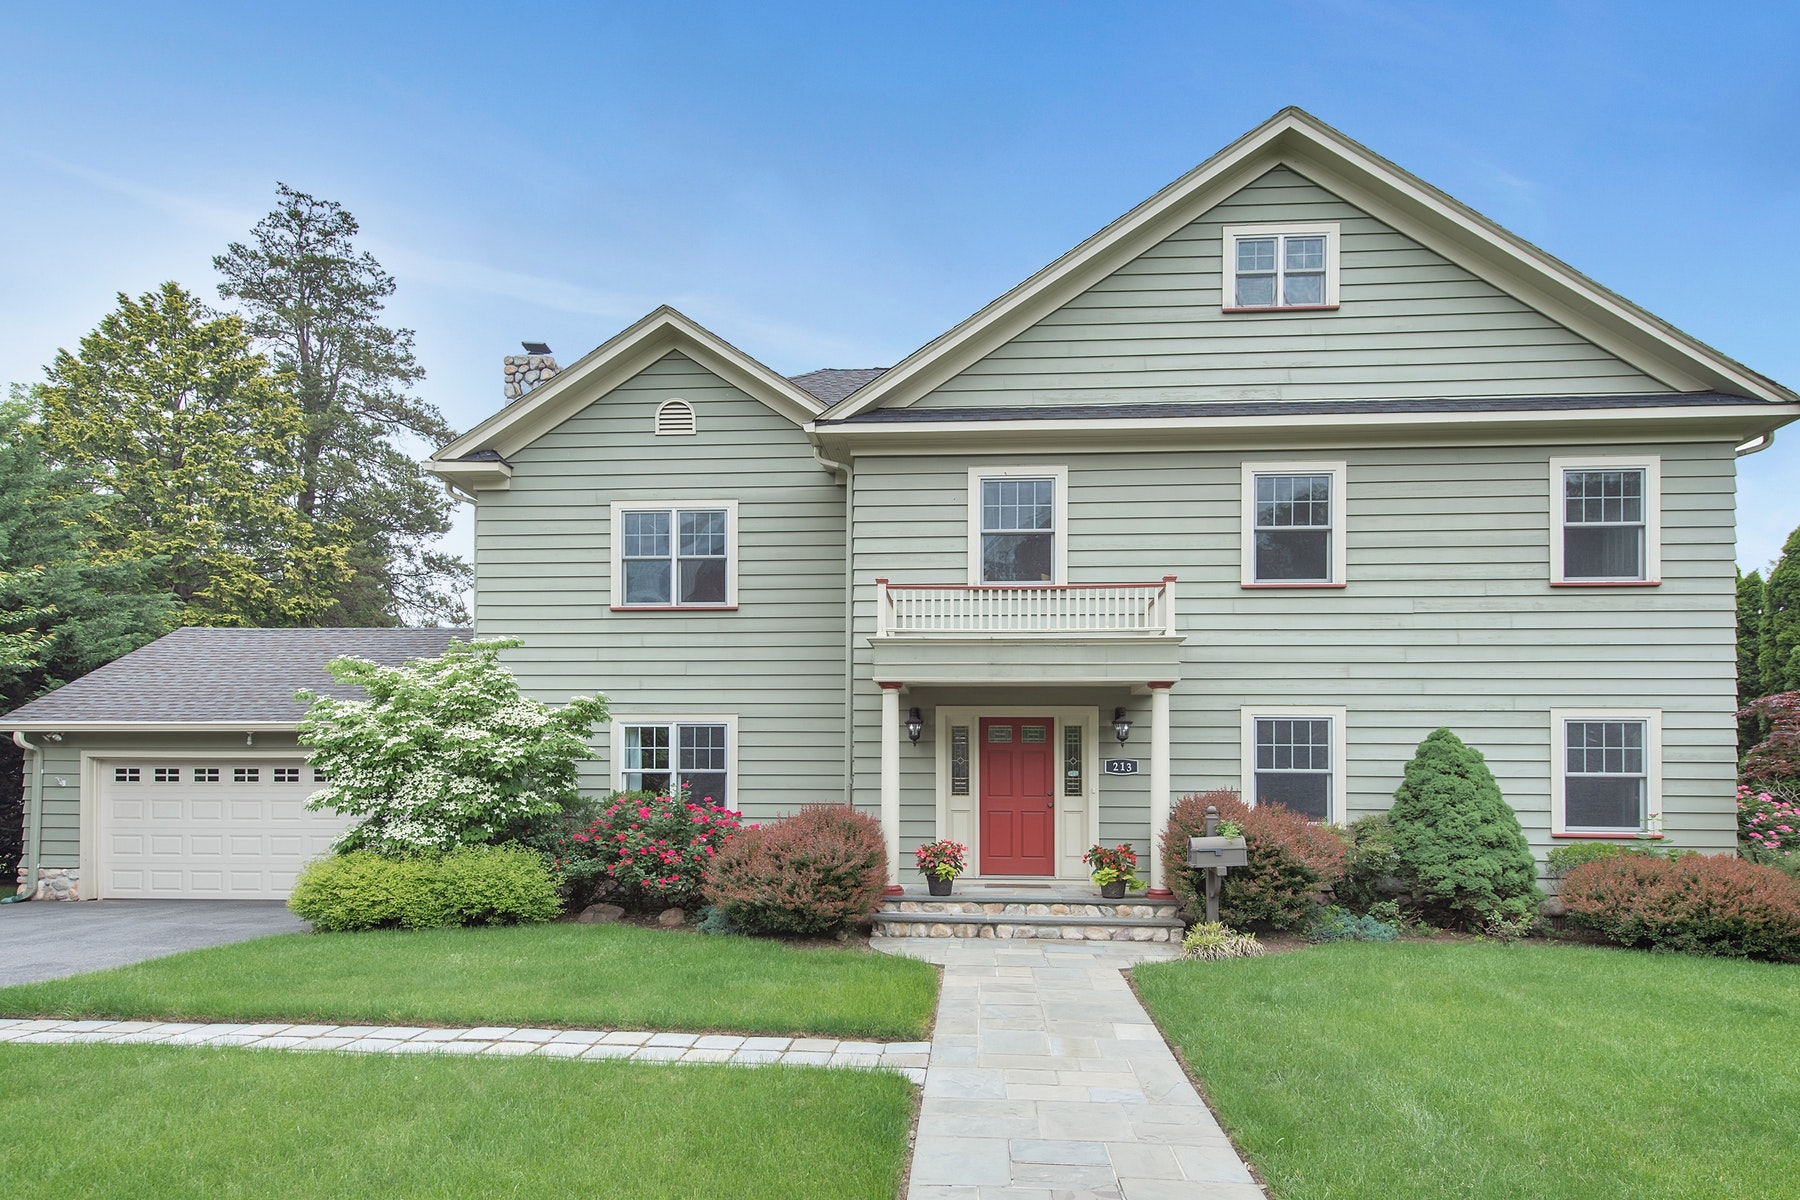 Single Family Home for Sale at Newly Renovated Colonial 213 Sherman Street, Glen Ridge, New Jersey 07028 United States